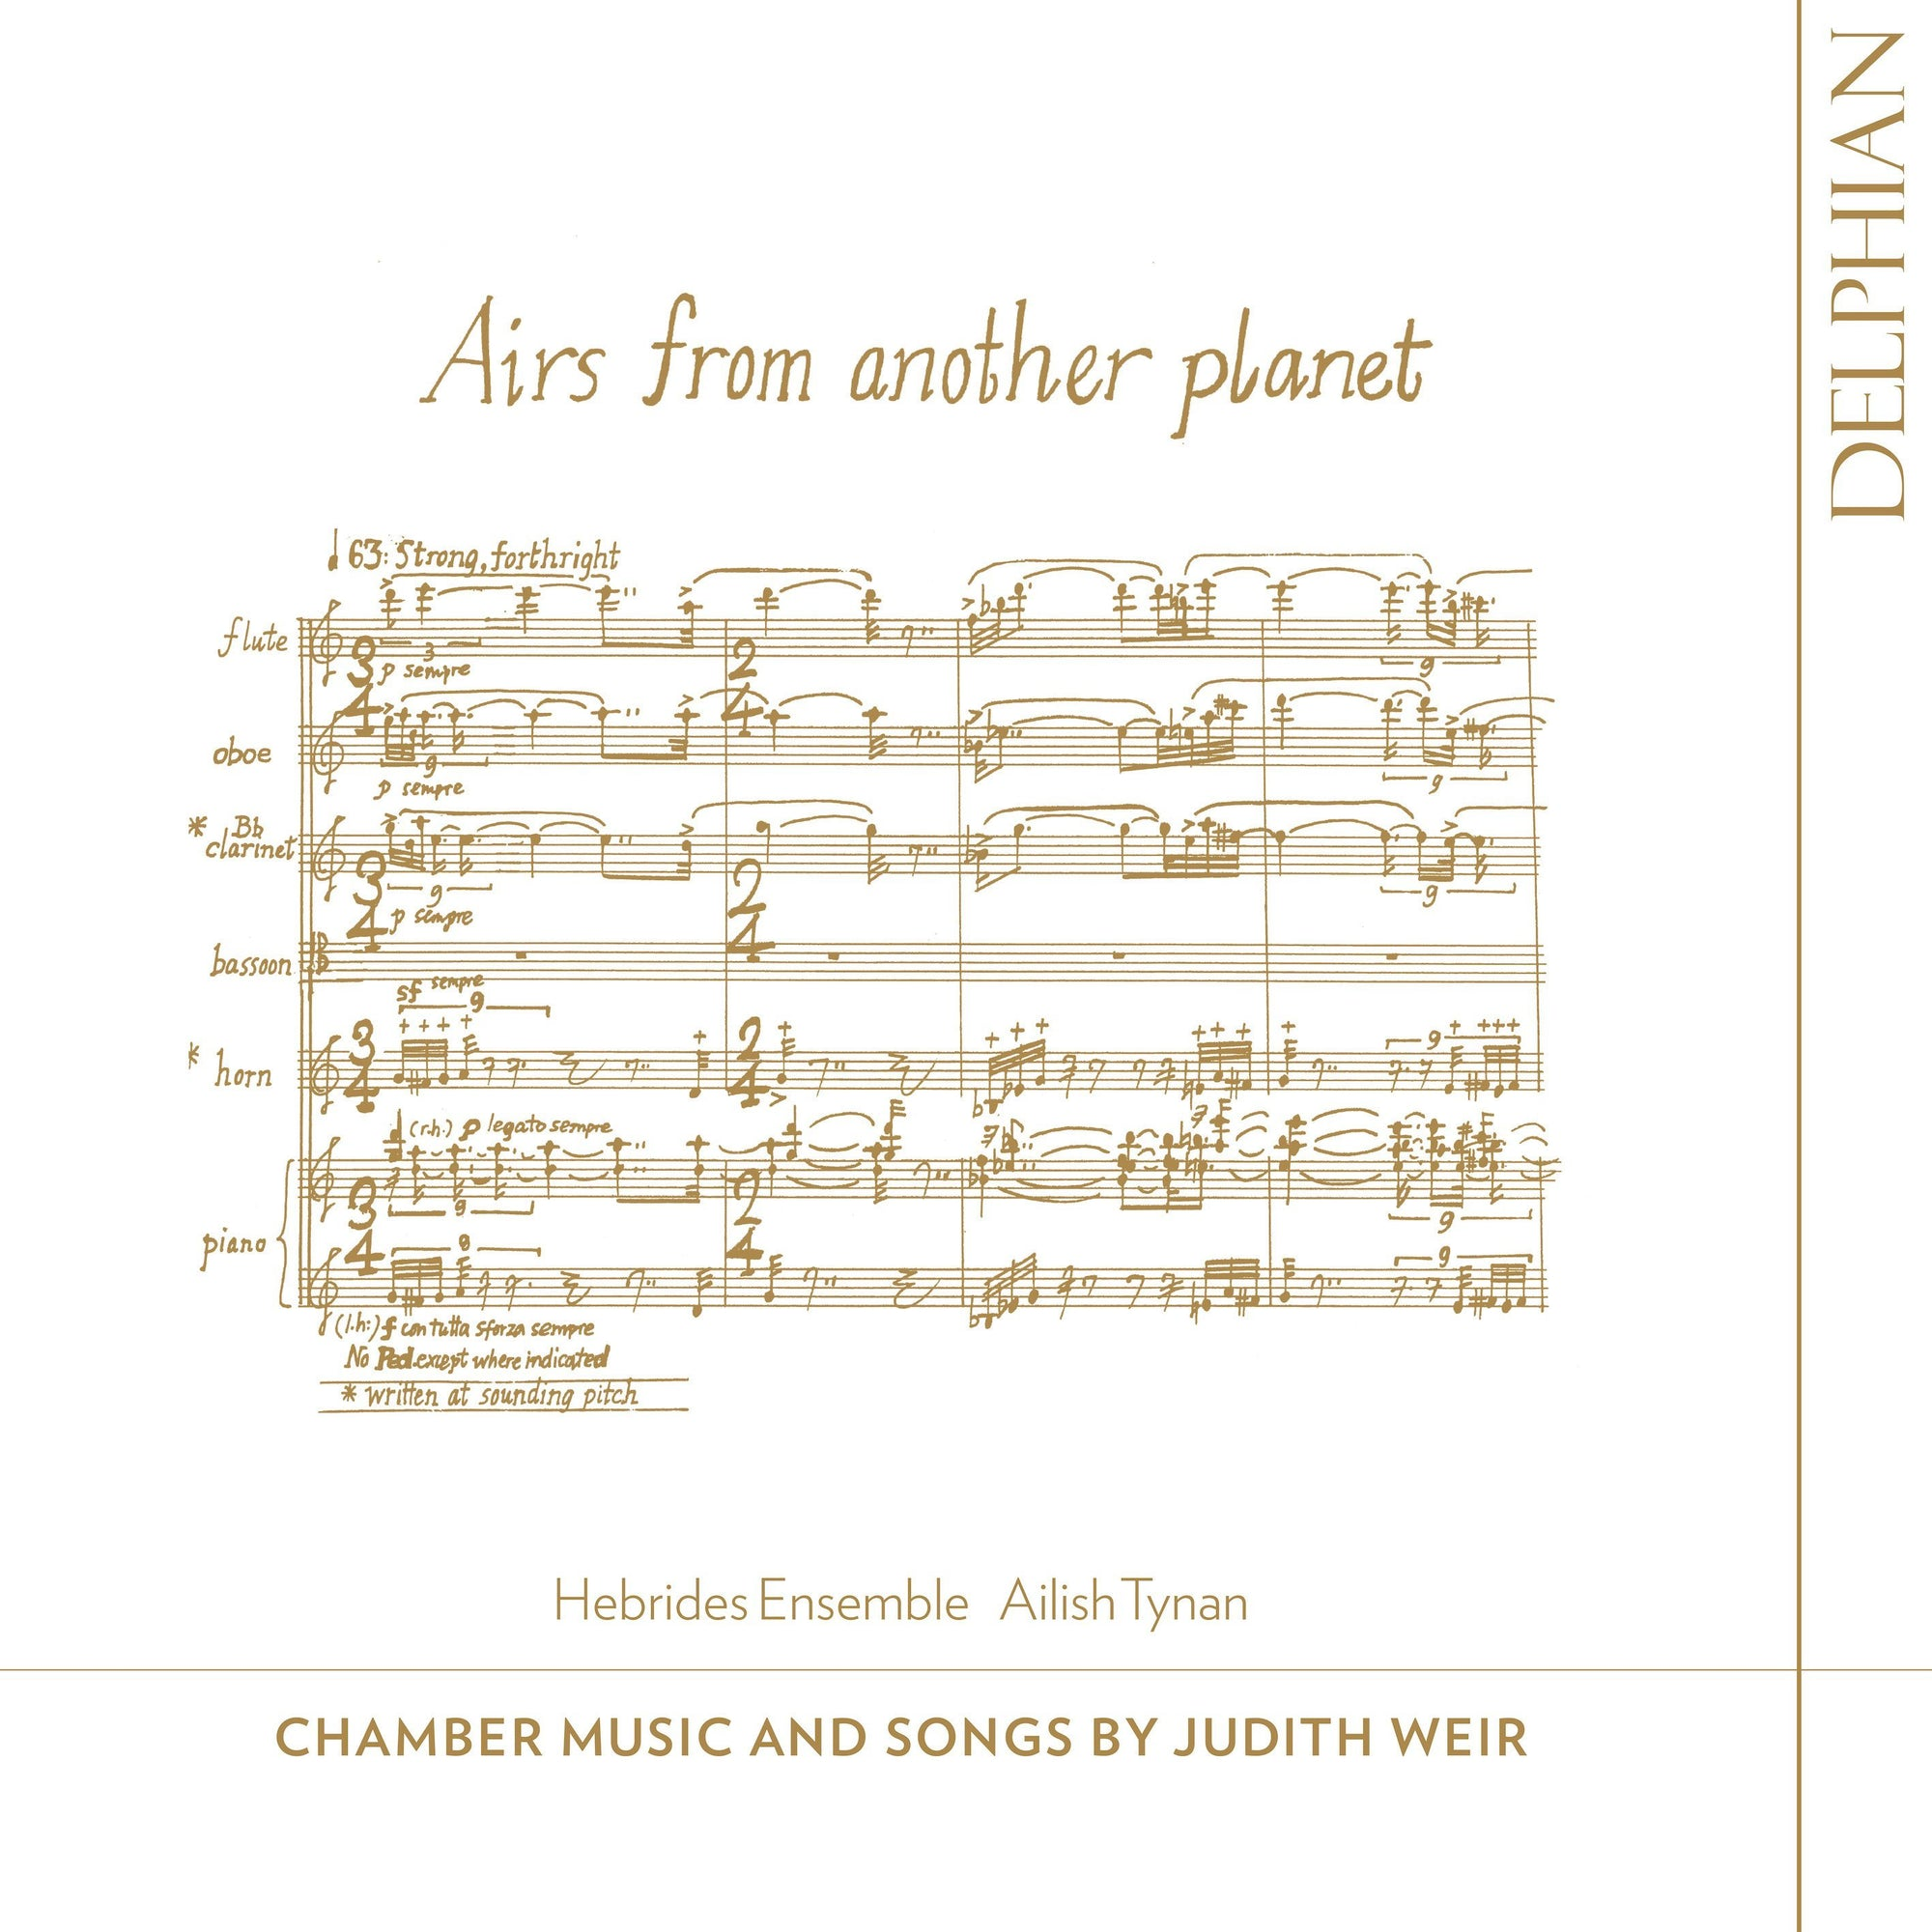 Airs from Another Planet: Chamber Music & Songs by Judith Weir CD Delphian Records